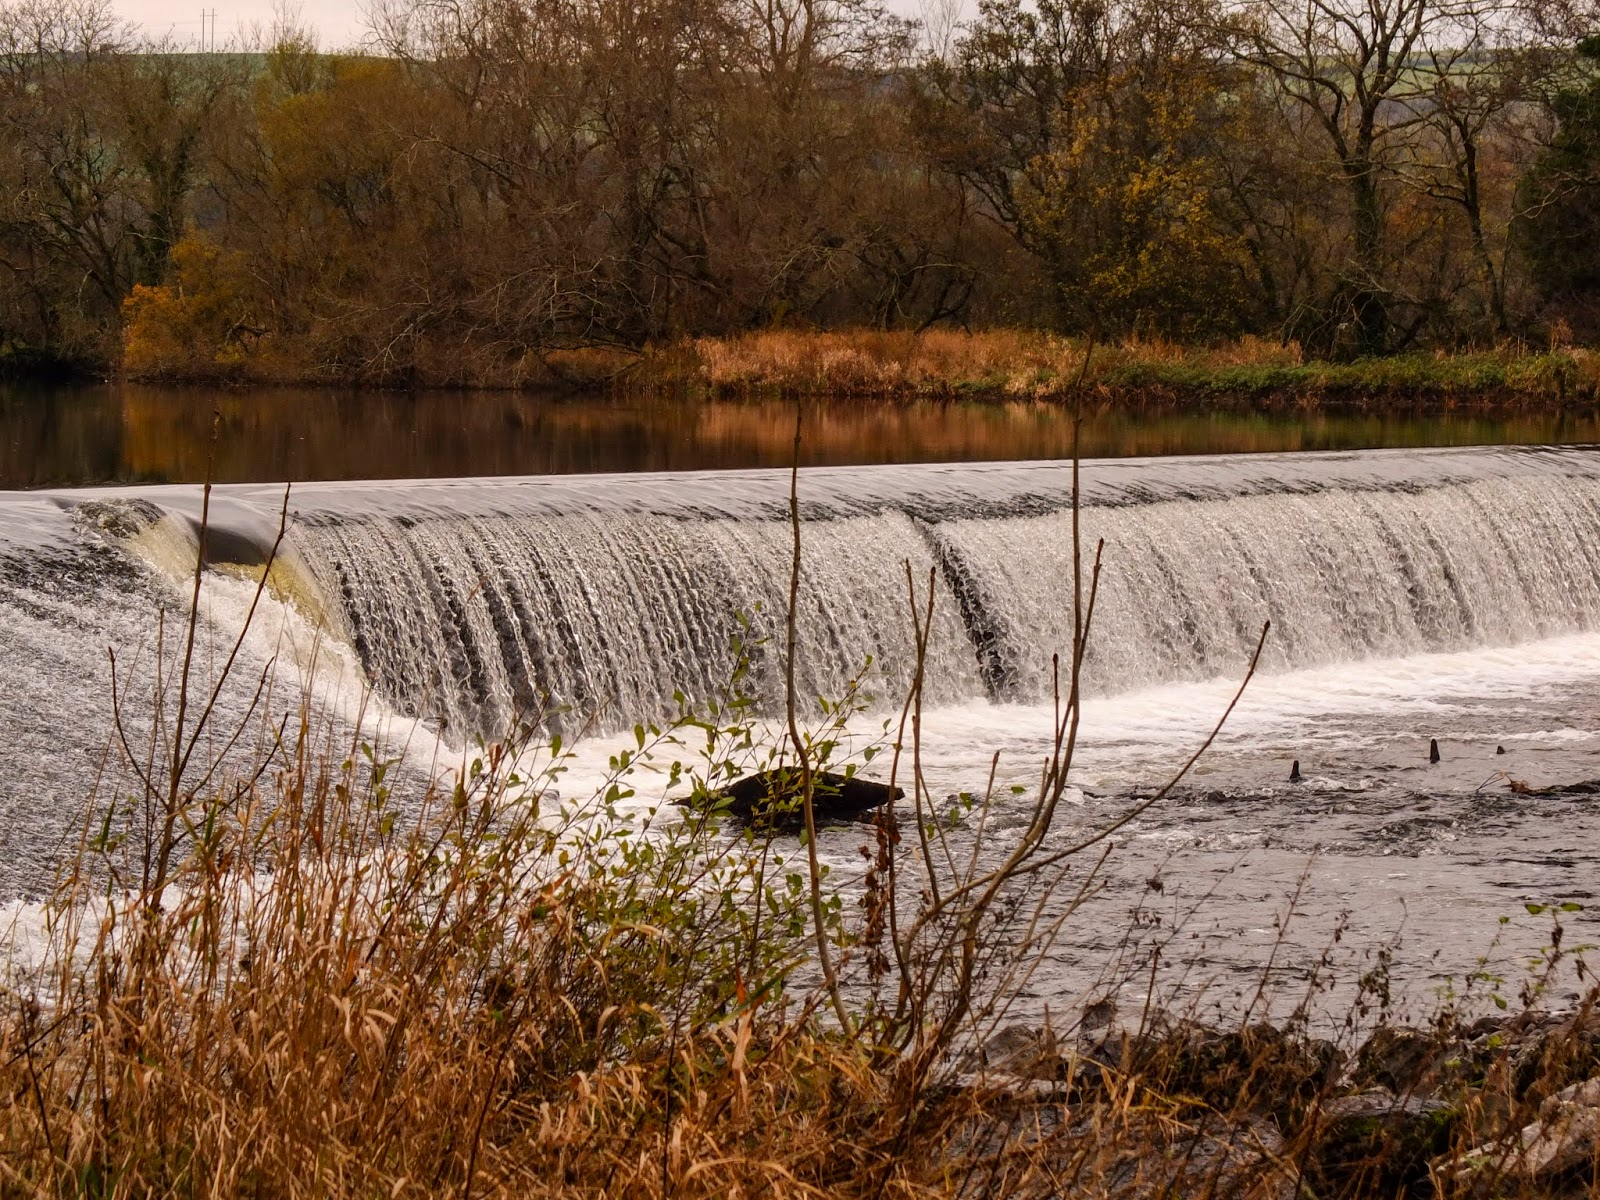 A weir on the river Lee in the Ballincollig Regional Park, County Cork.